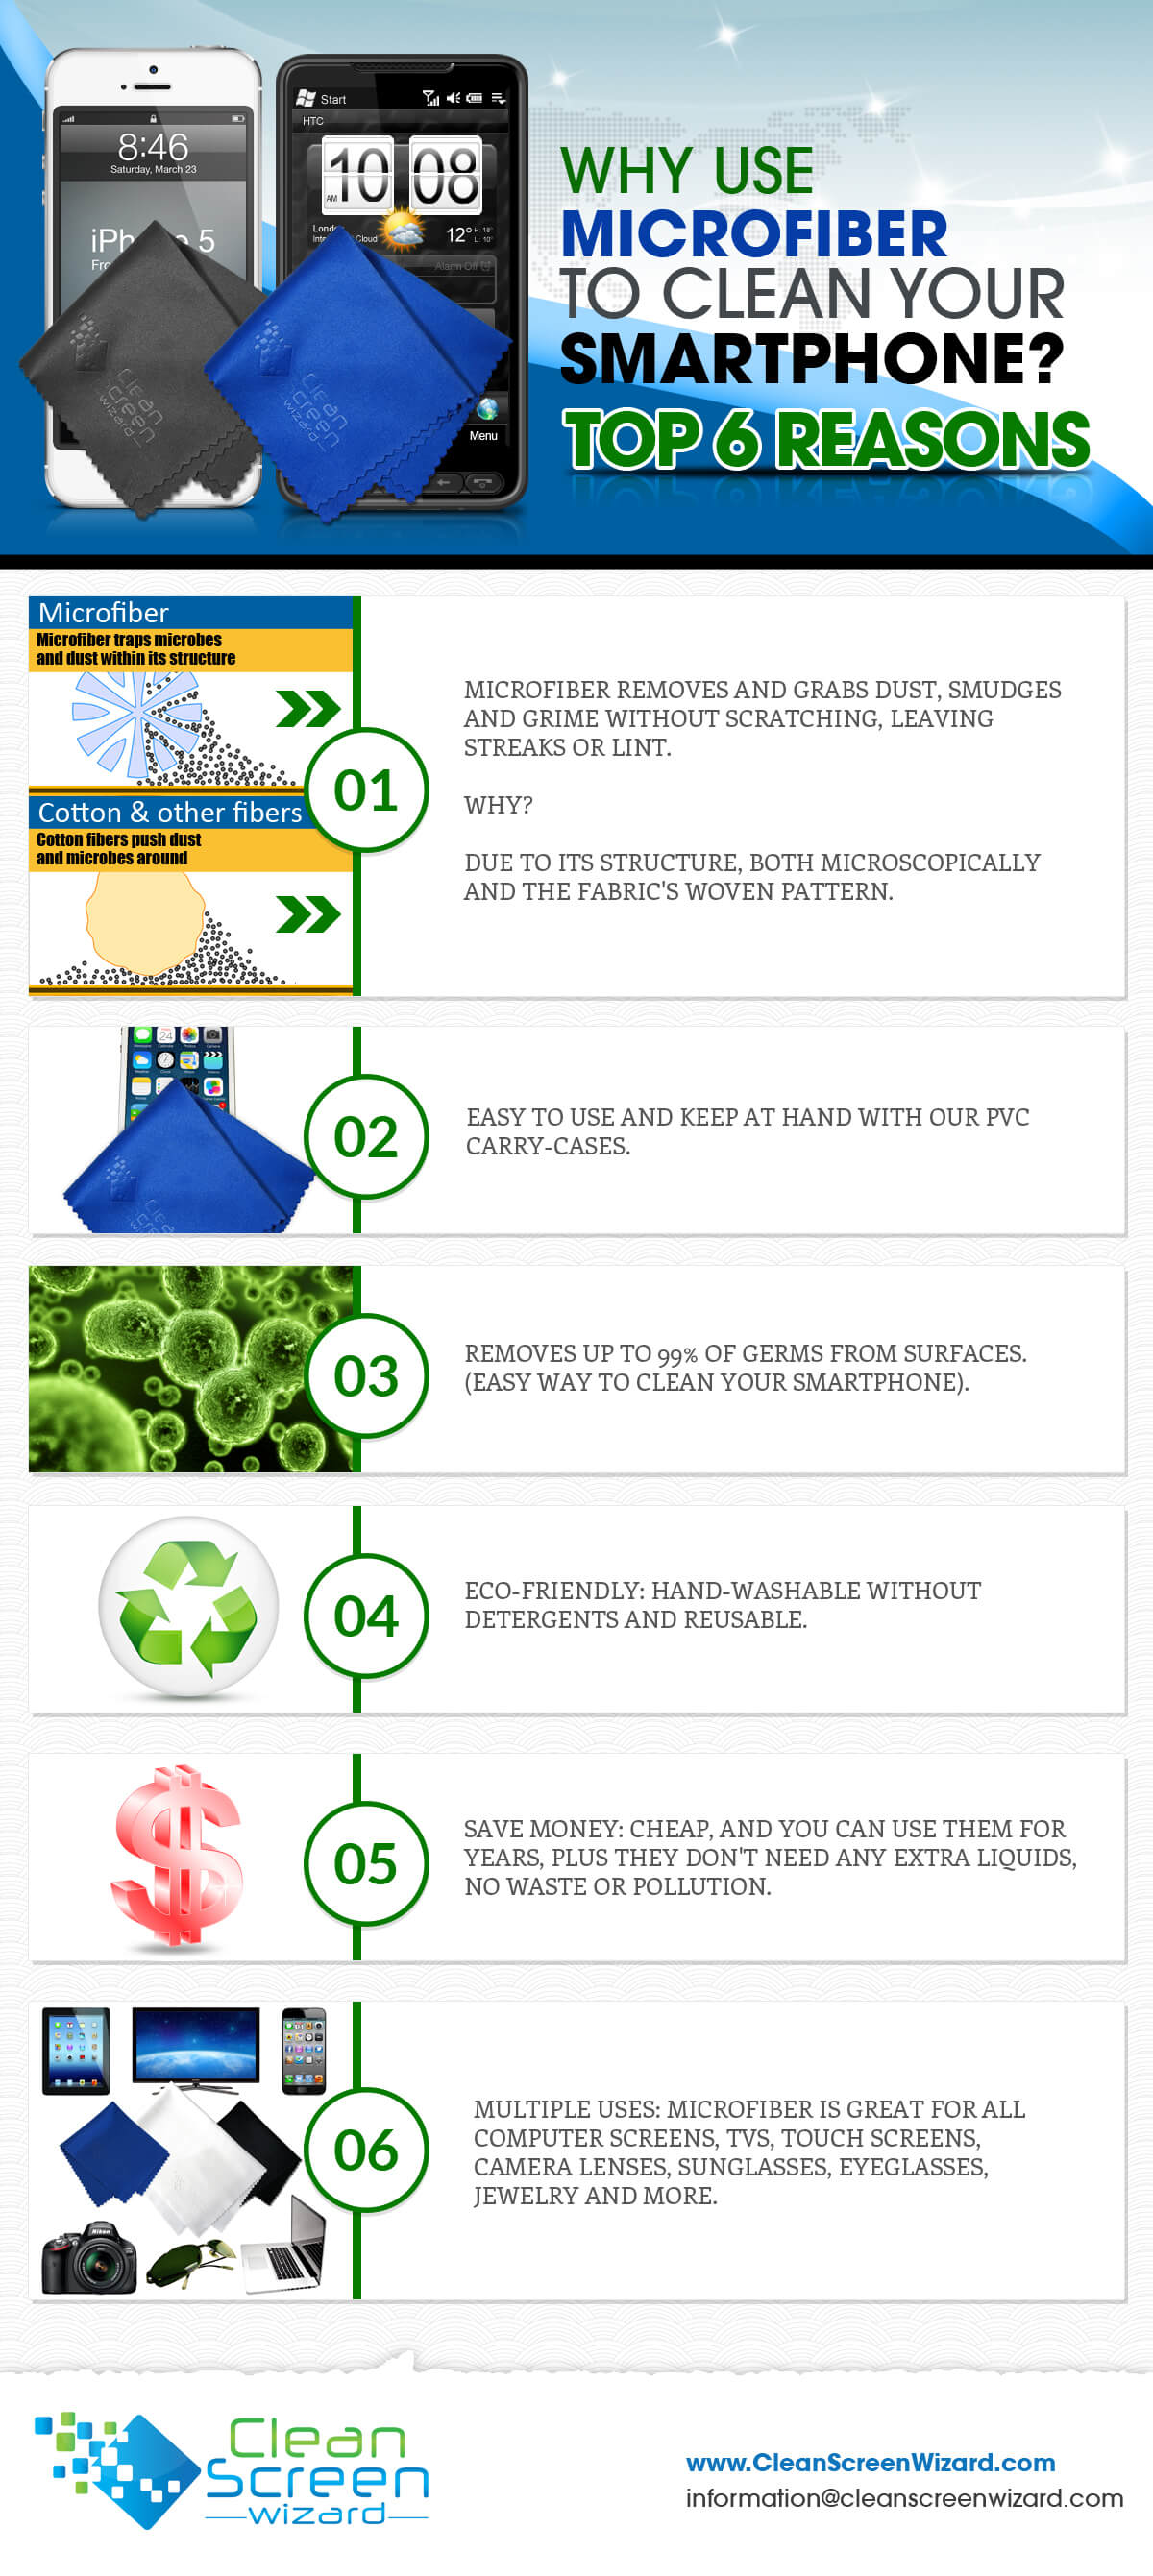 Why_Use_Microfiber_To_Clean_Your_Smartphone-2.0-infographic